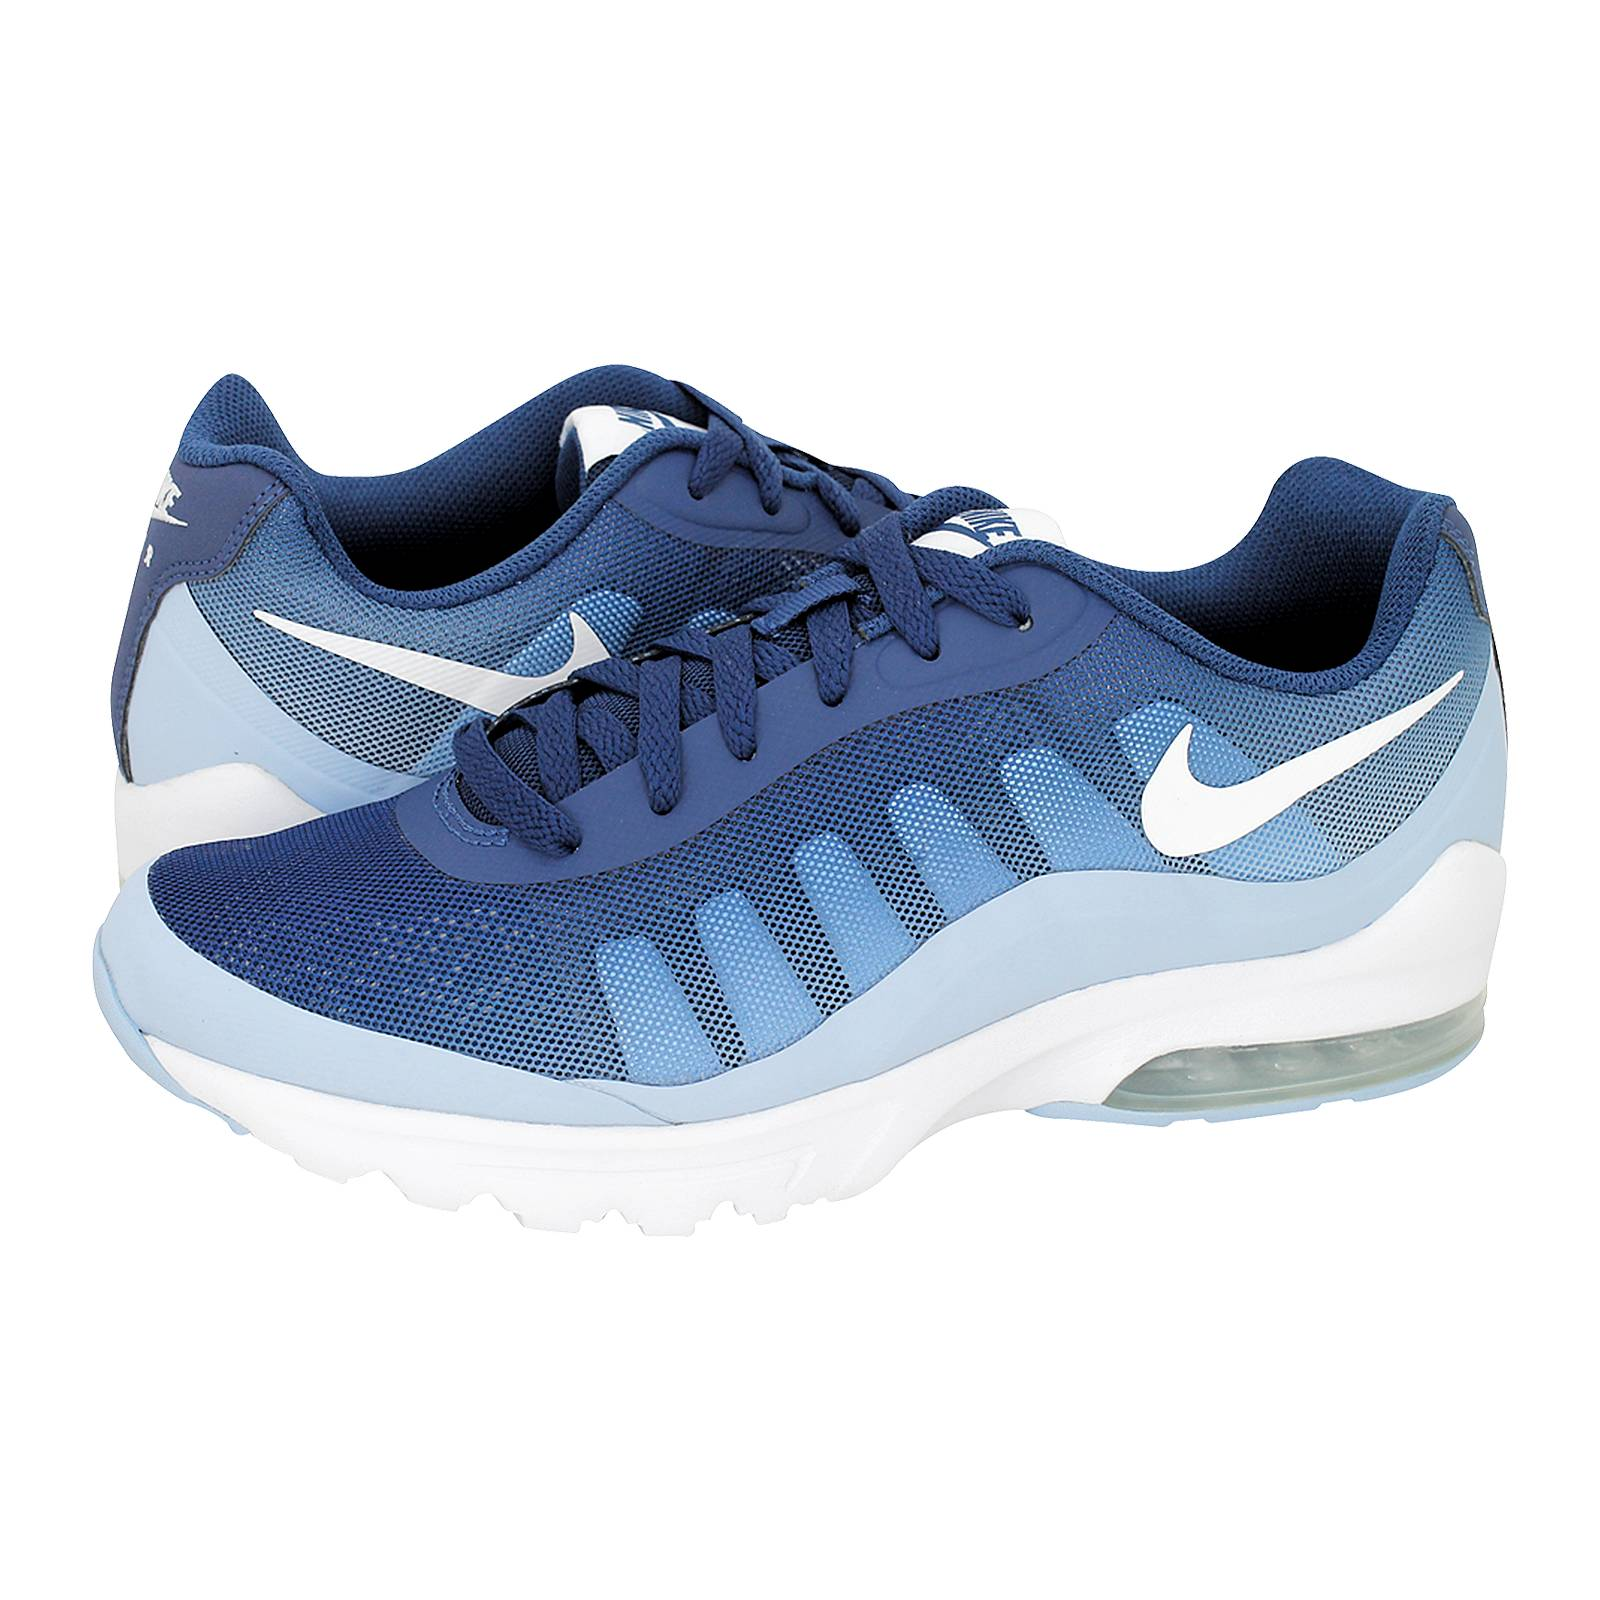 67afb190d9 Air Max Invigor Print - Nike Men's athletic shoes made of fabric and ...